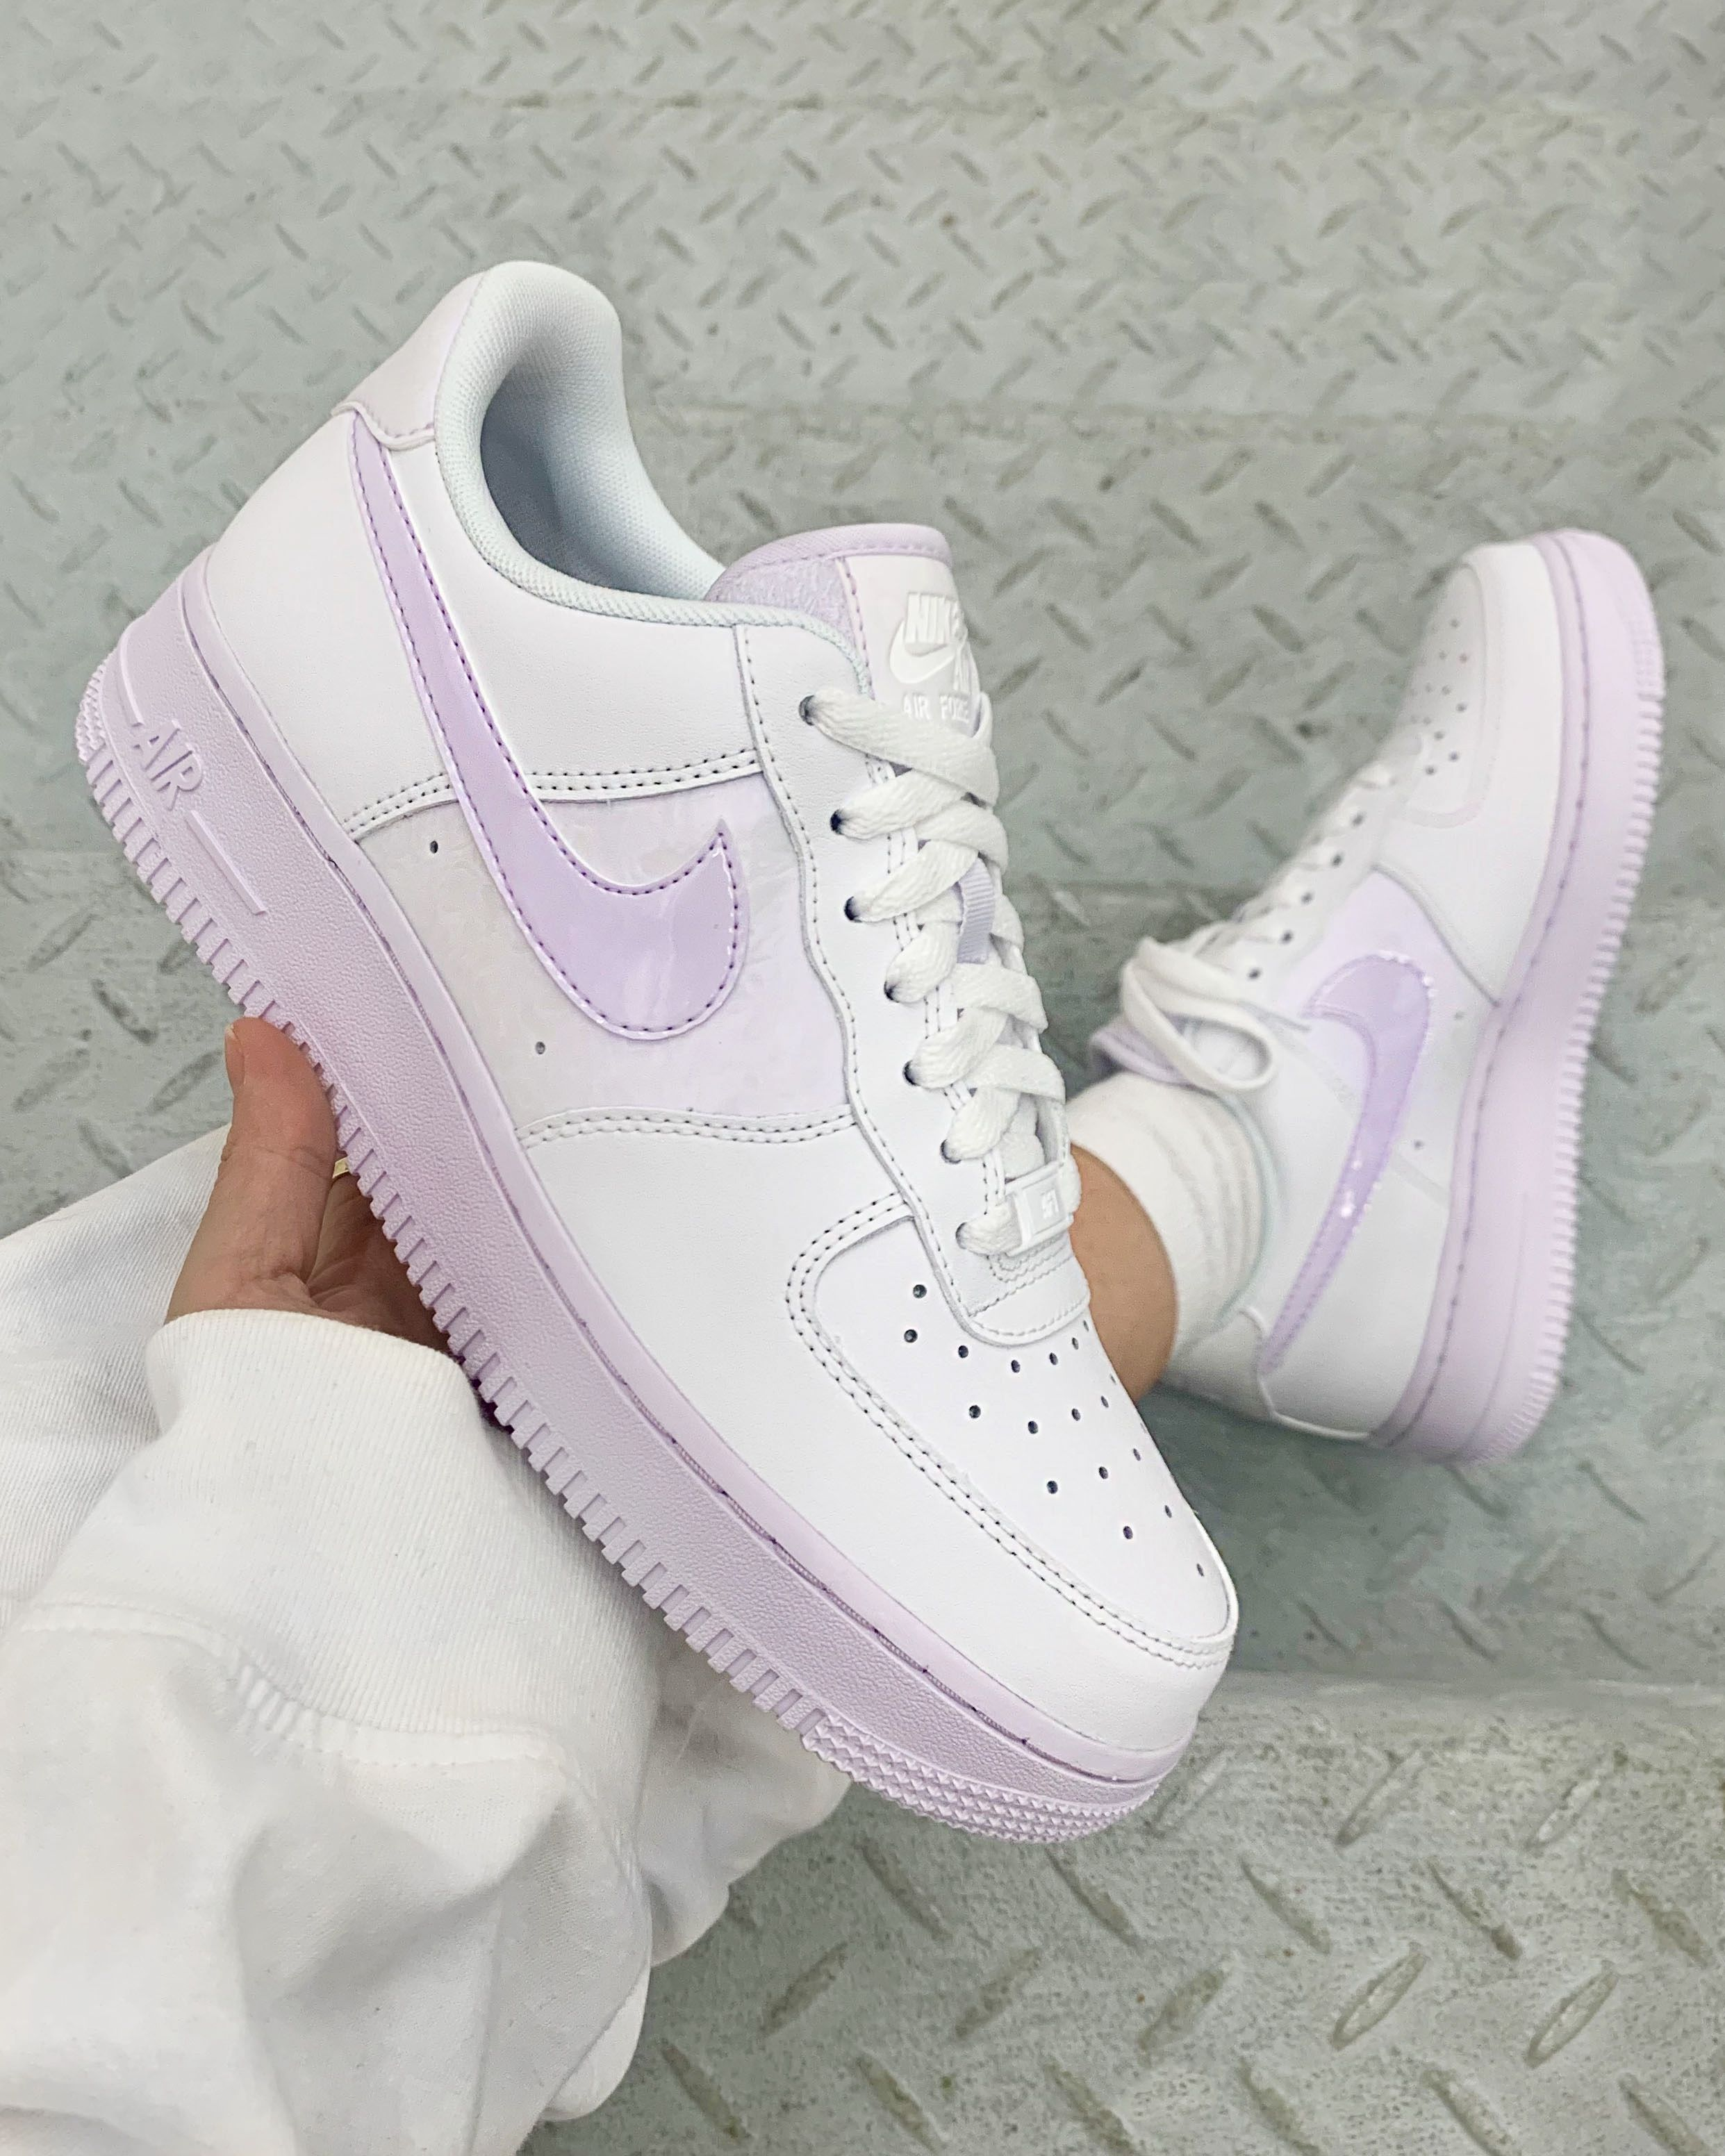 Nike Air Force 1 LV8 White Platinum Tint | CW7584-100 in ...